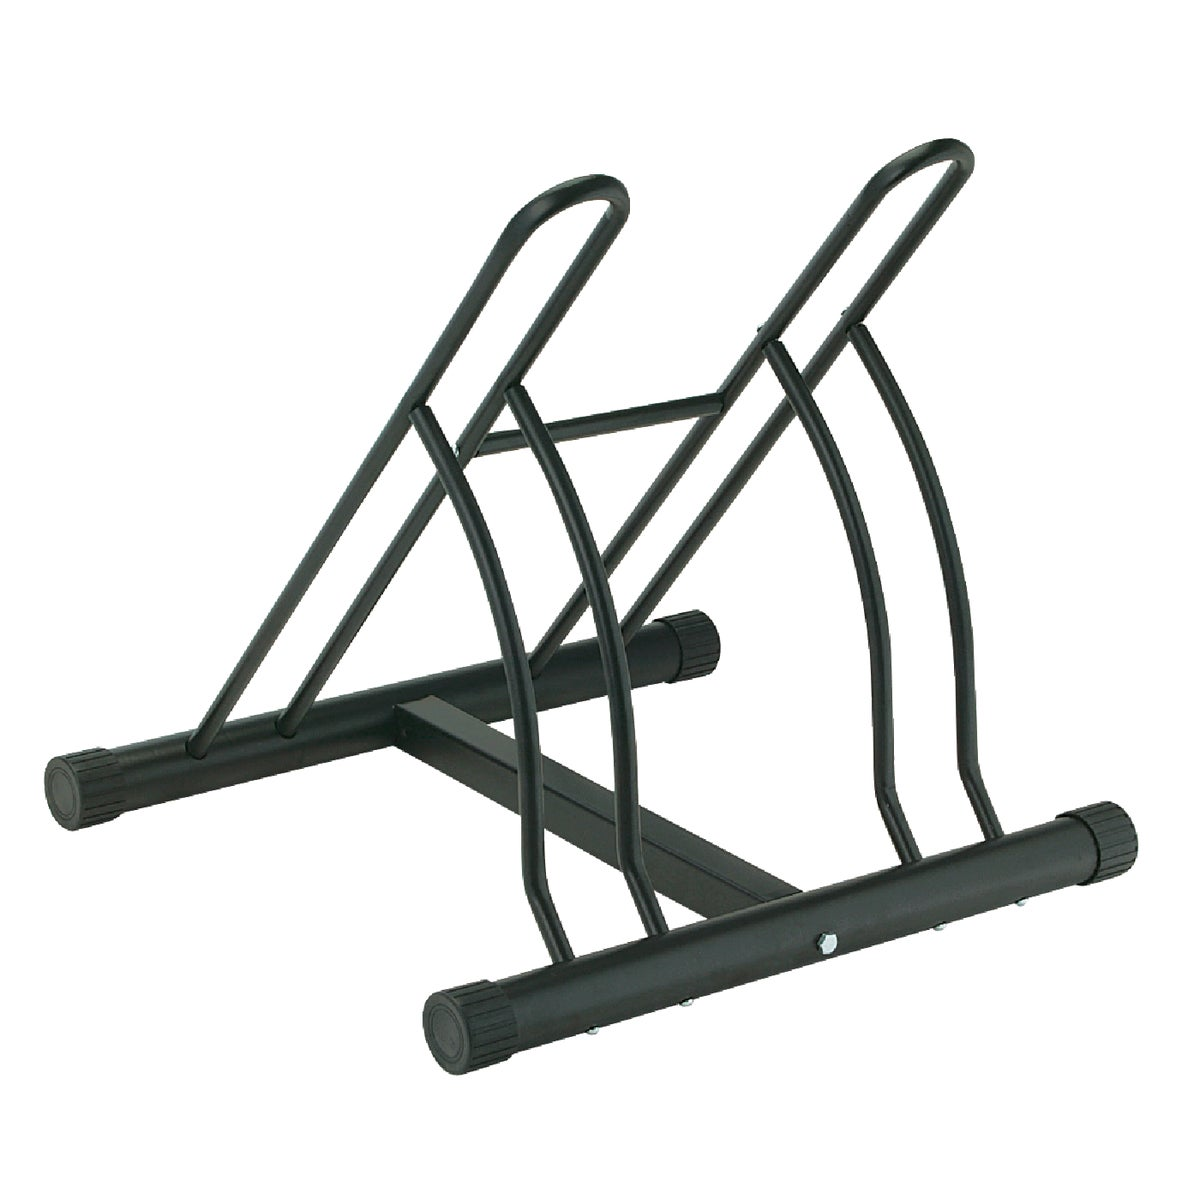 FLOOR BIKE STAND - PBS2R by Itw Brands